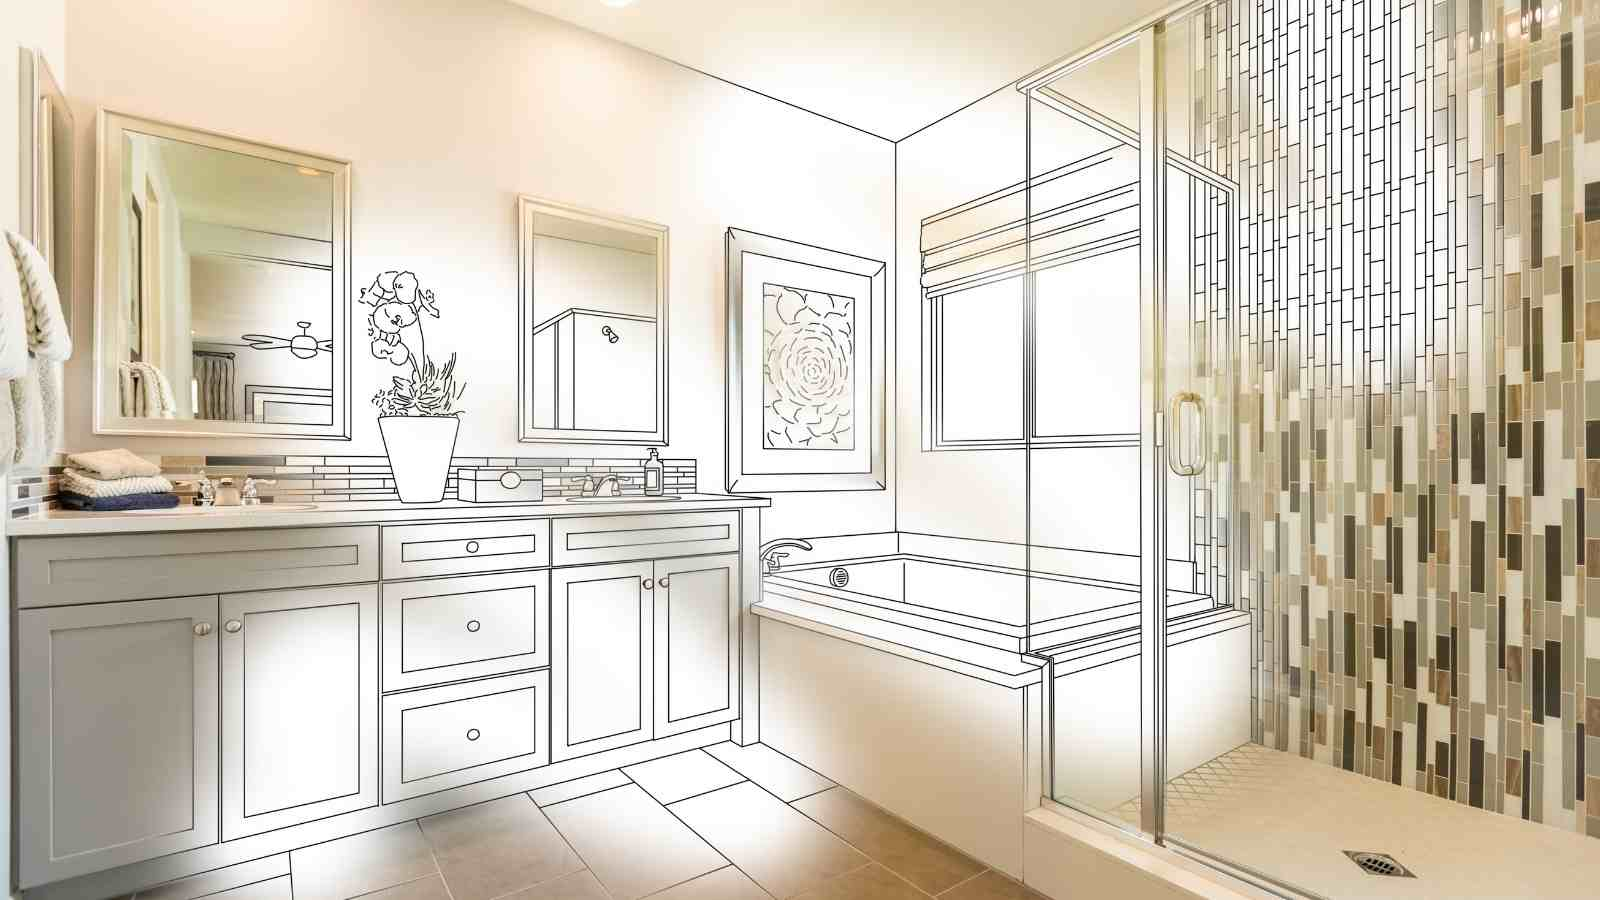 35 amazing bathroom remodel diy ideas that give a stunning for Ideas for bathroom renovation pictures